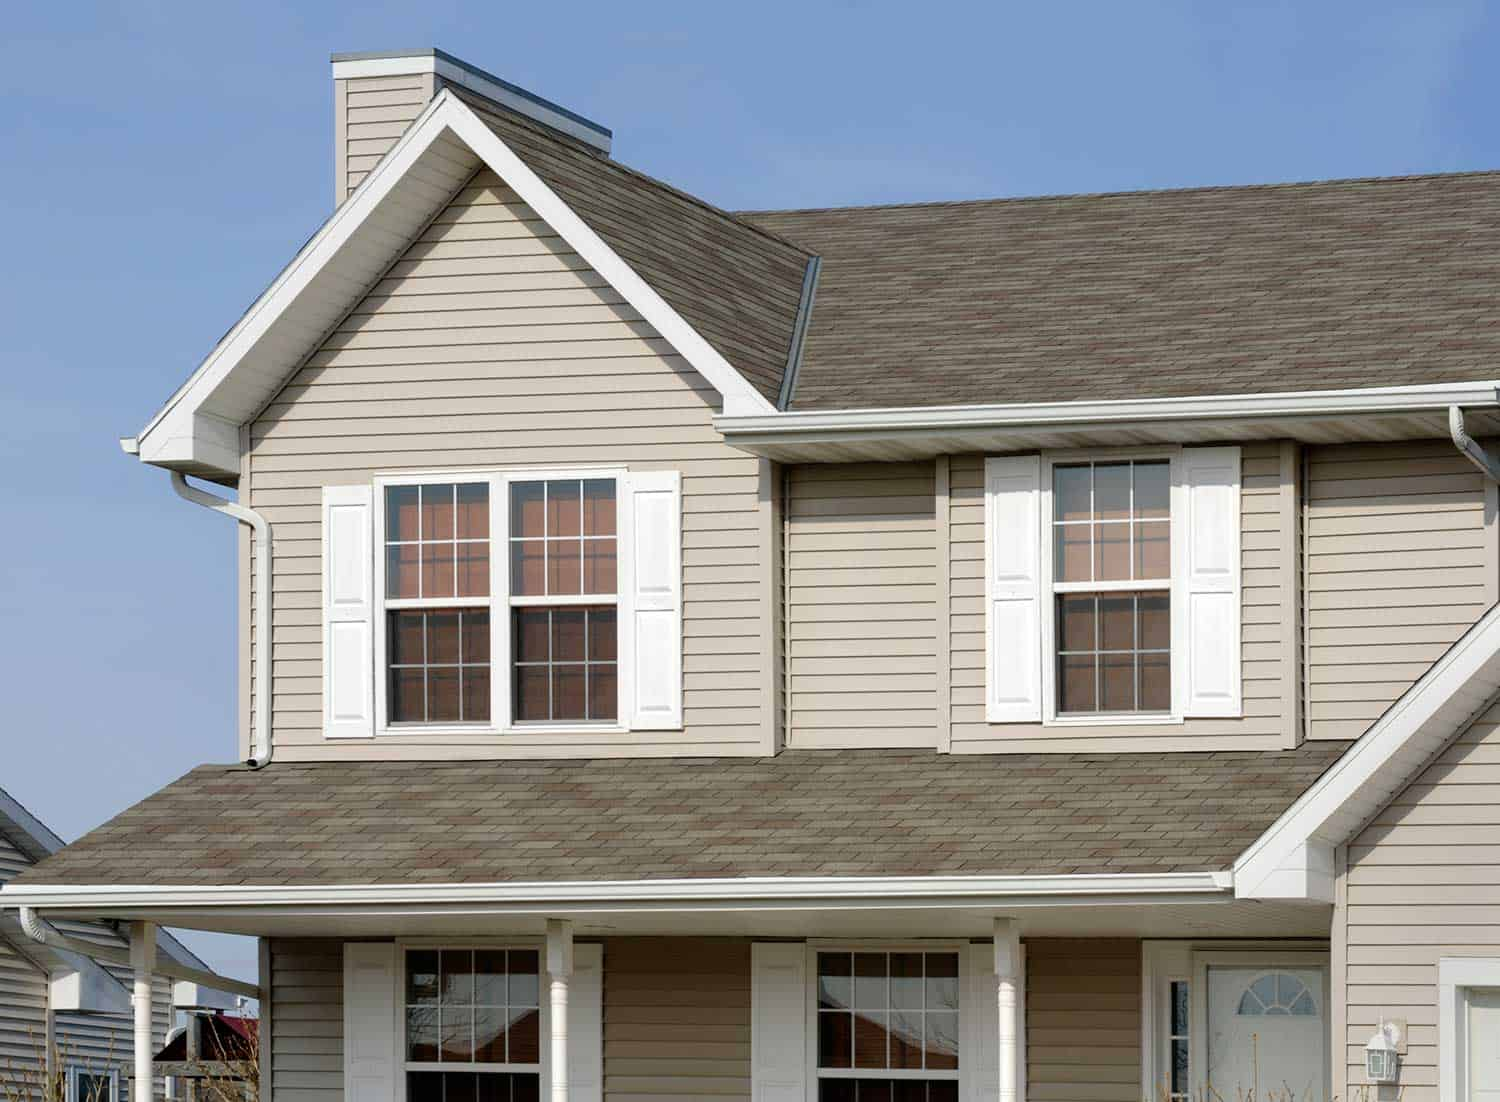 Residential home with vinyl siding, gable roof, seamless gutters and shutters